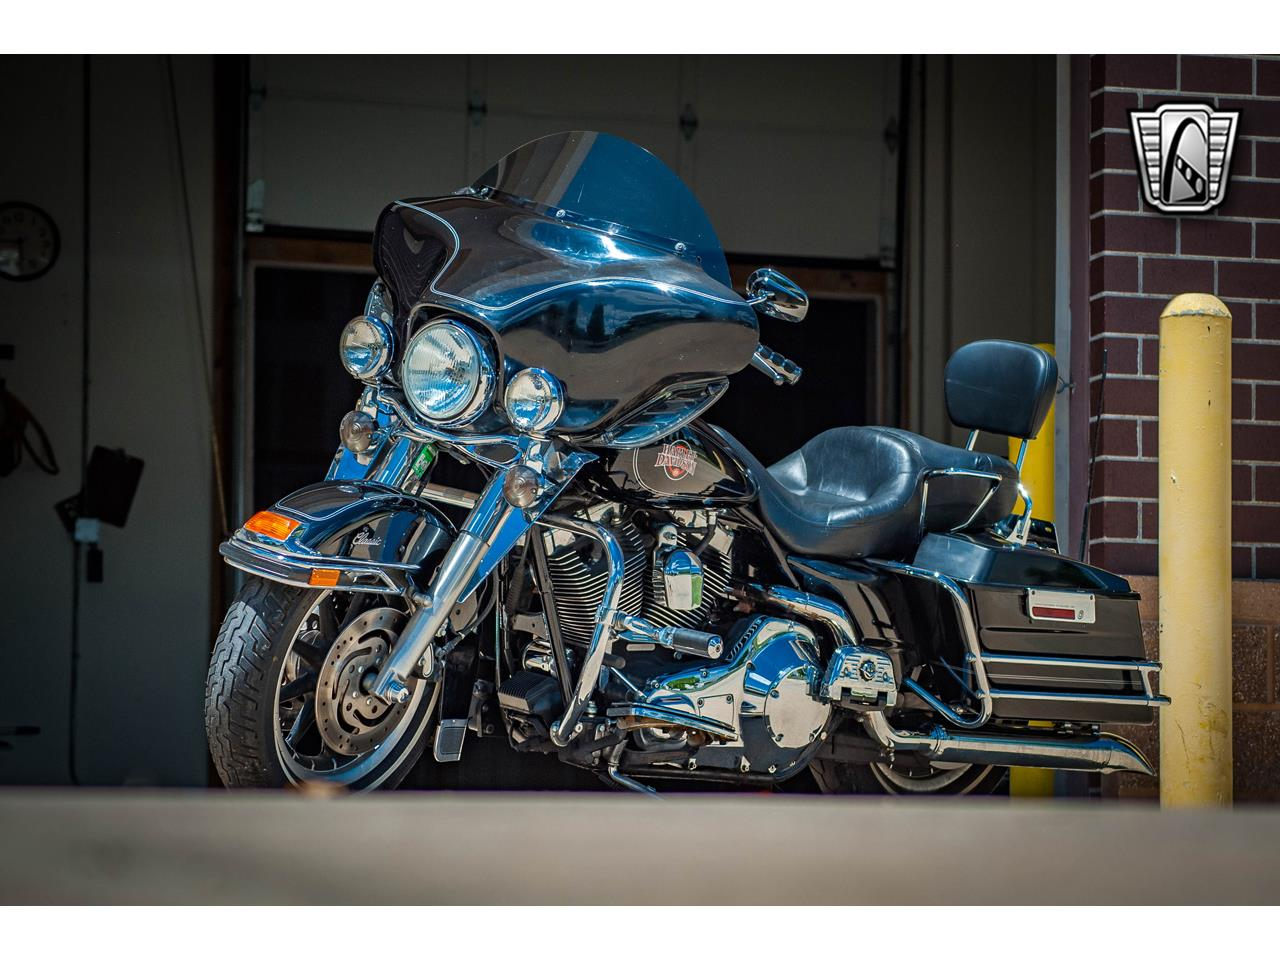 2004 Harley-Davidson Motorcycle for sale in O'Fallon, IL – photo 42